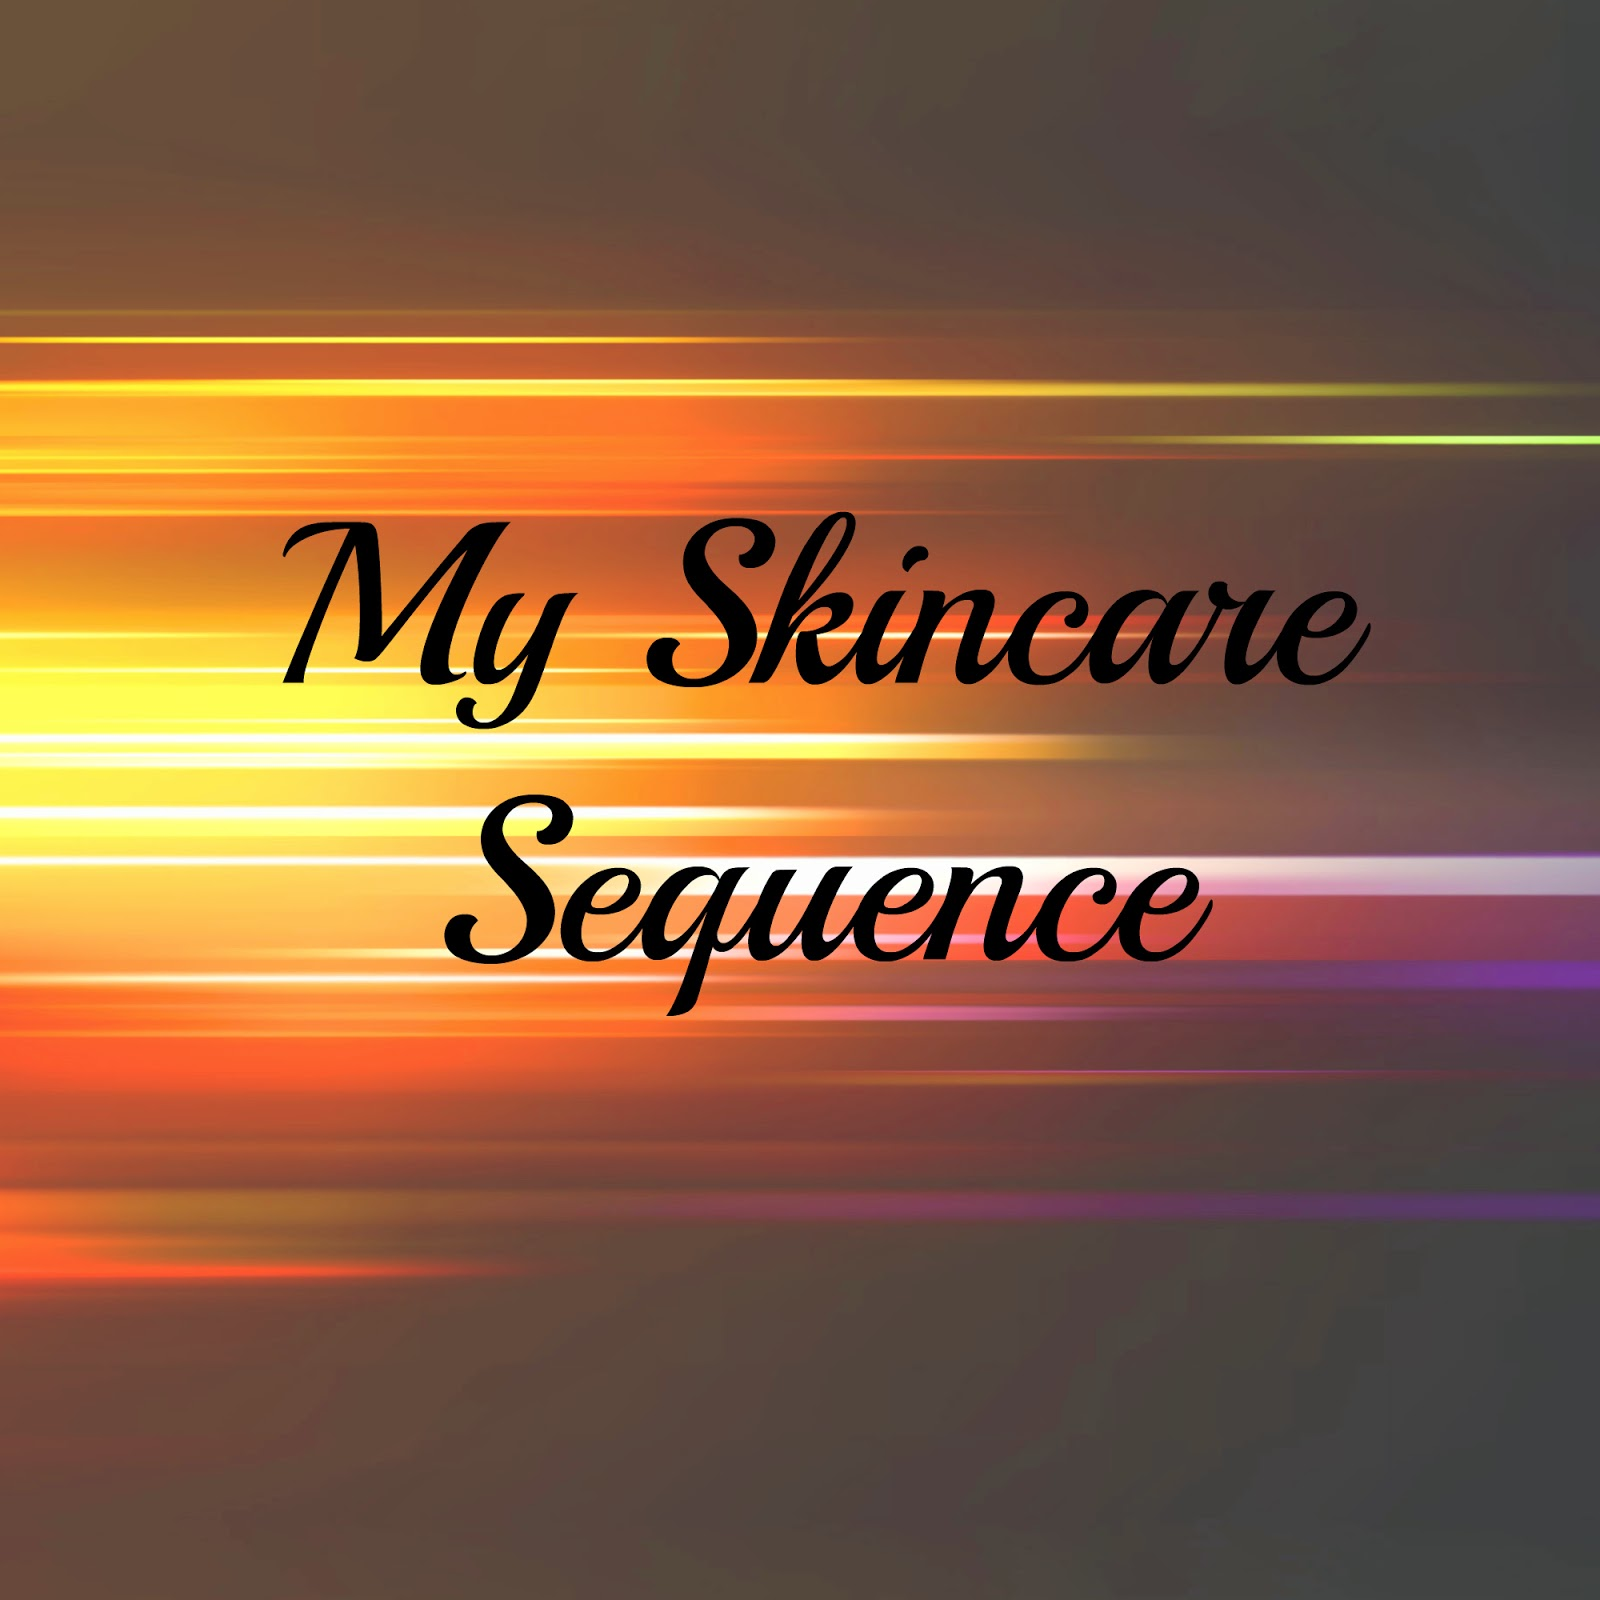 MY SKINCARE SEQUENCE